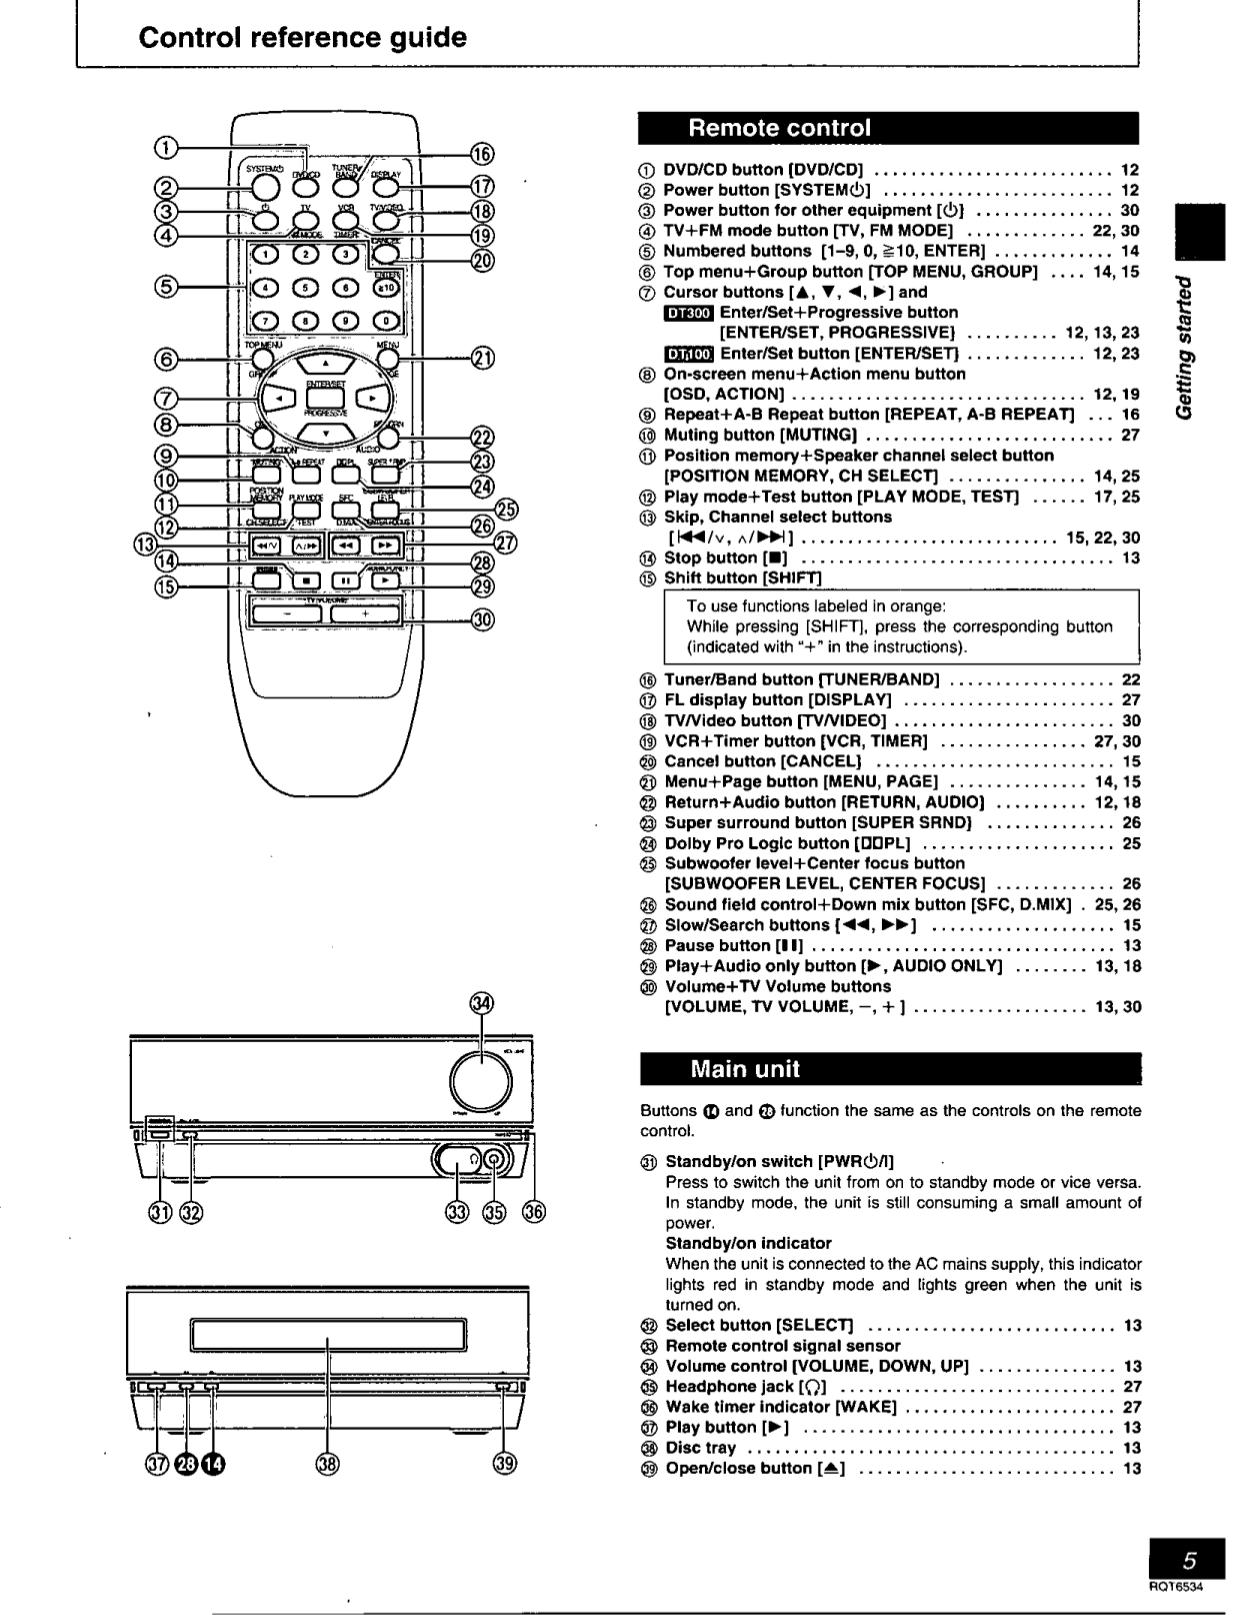 PDF manual for Panasonic Home Theater SC-DT300